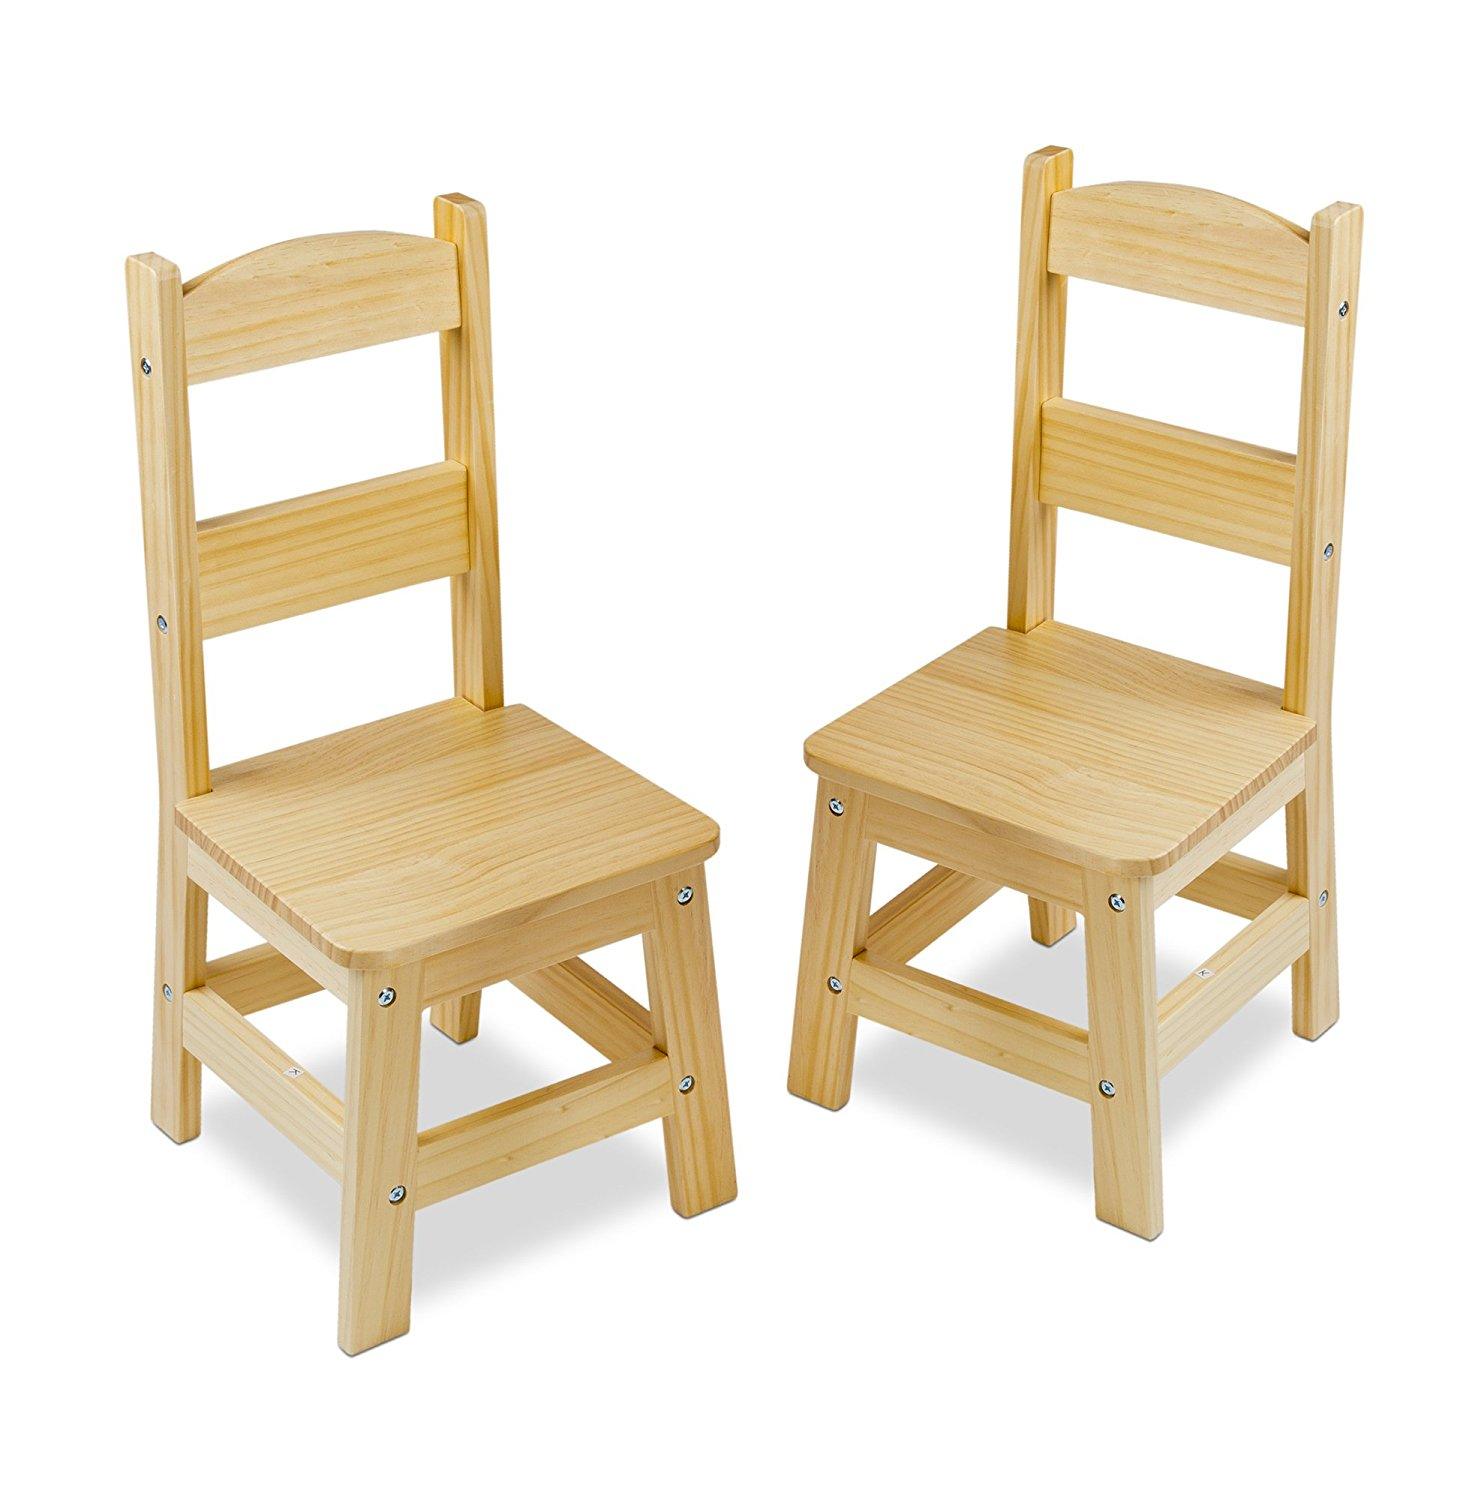 Best Deal On Kitchen Table And Chair Set